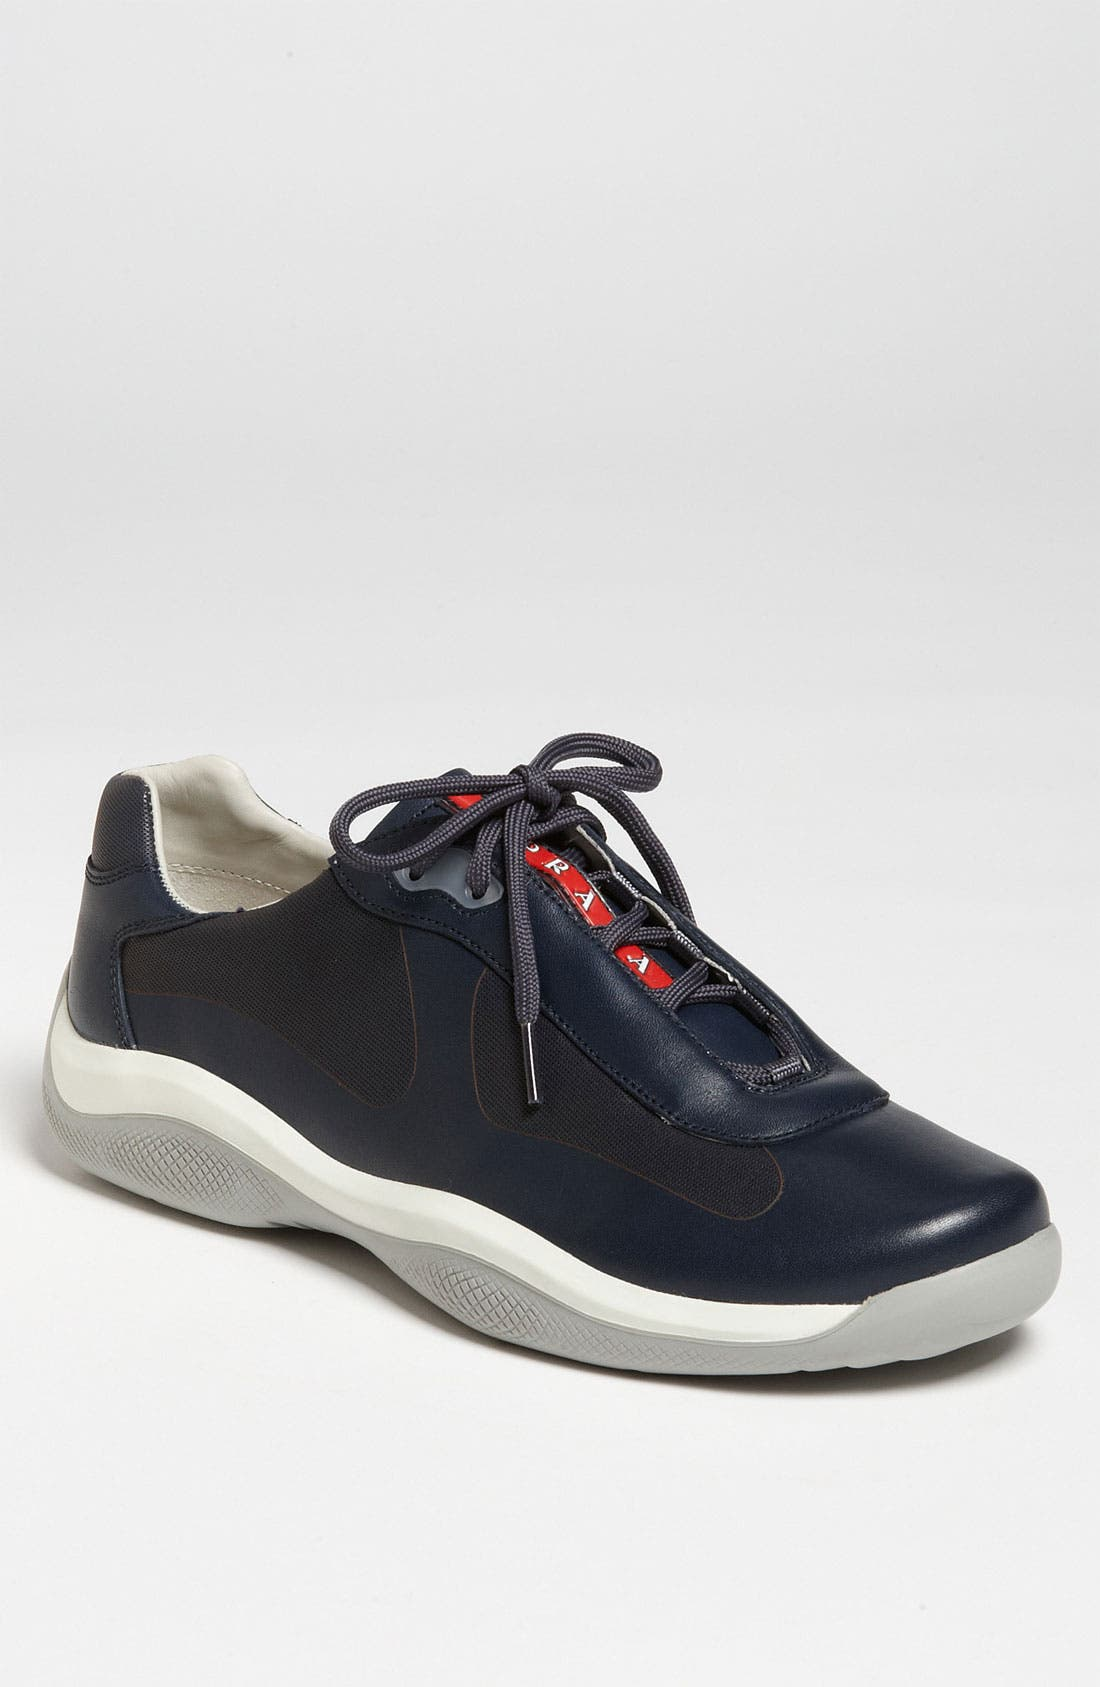 Alternate Image 1 Selected - Prada Leather Sneaker